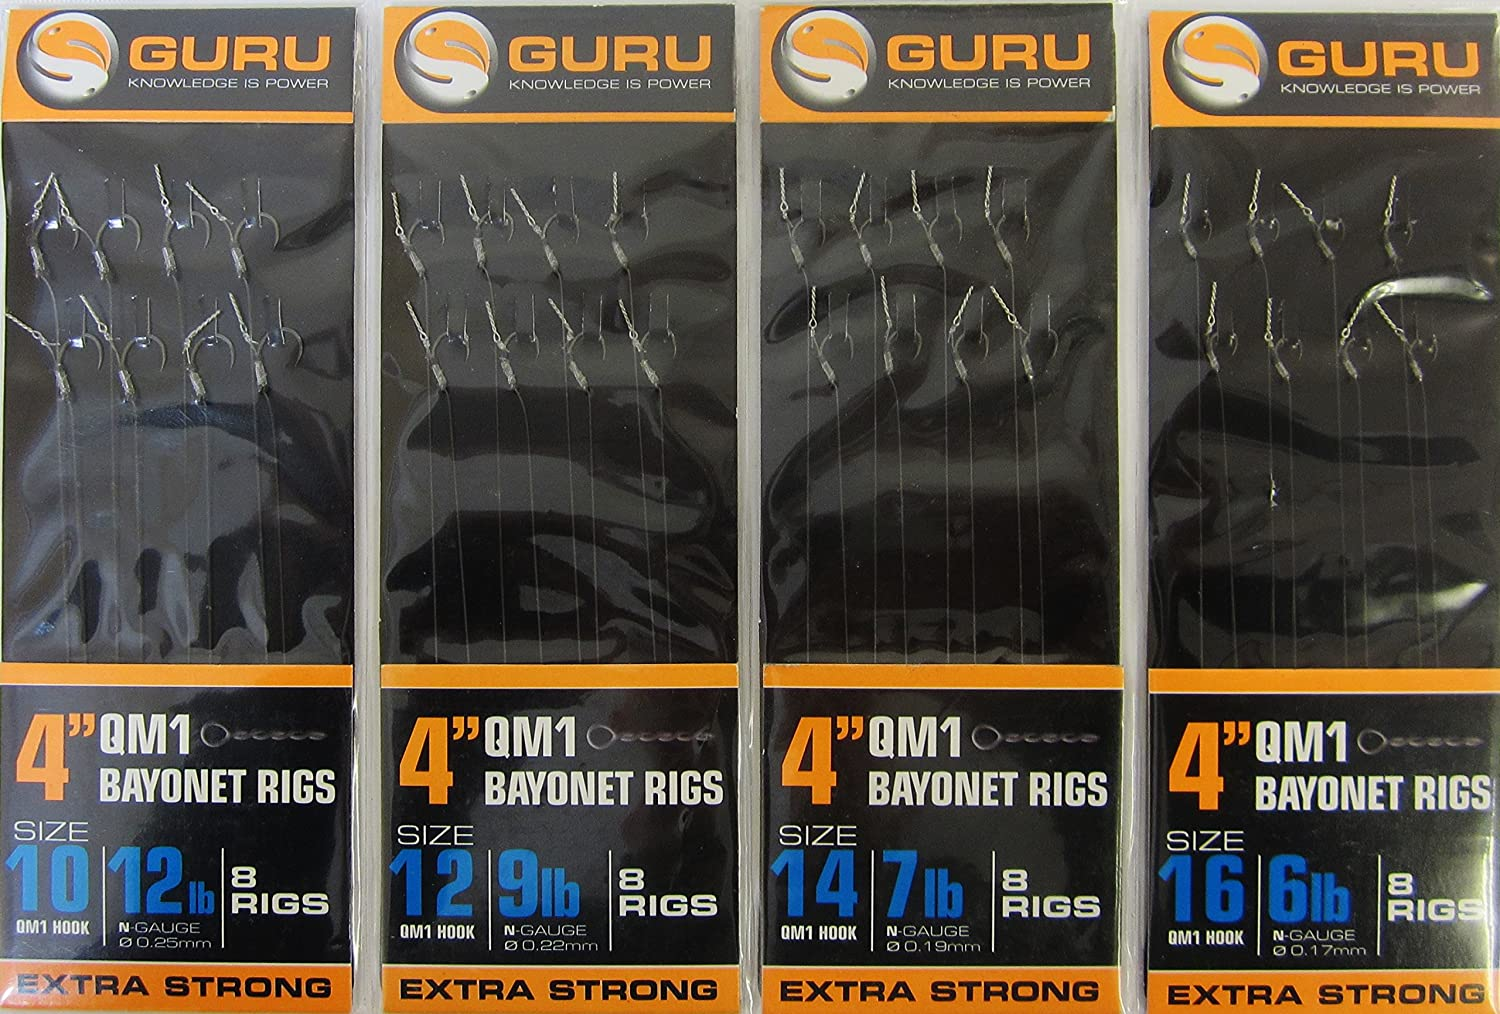 also comes with 10 FTD Hooks to Nylon of GURU QM1 Fishing Hooks Ready Tied to 4 inch ins // 10cm Hooklengths with BAYONETS FTD available in Size 10, 12, 14 /& 16 2 Packs of 8 Min 16 Rigs